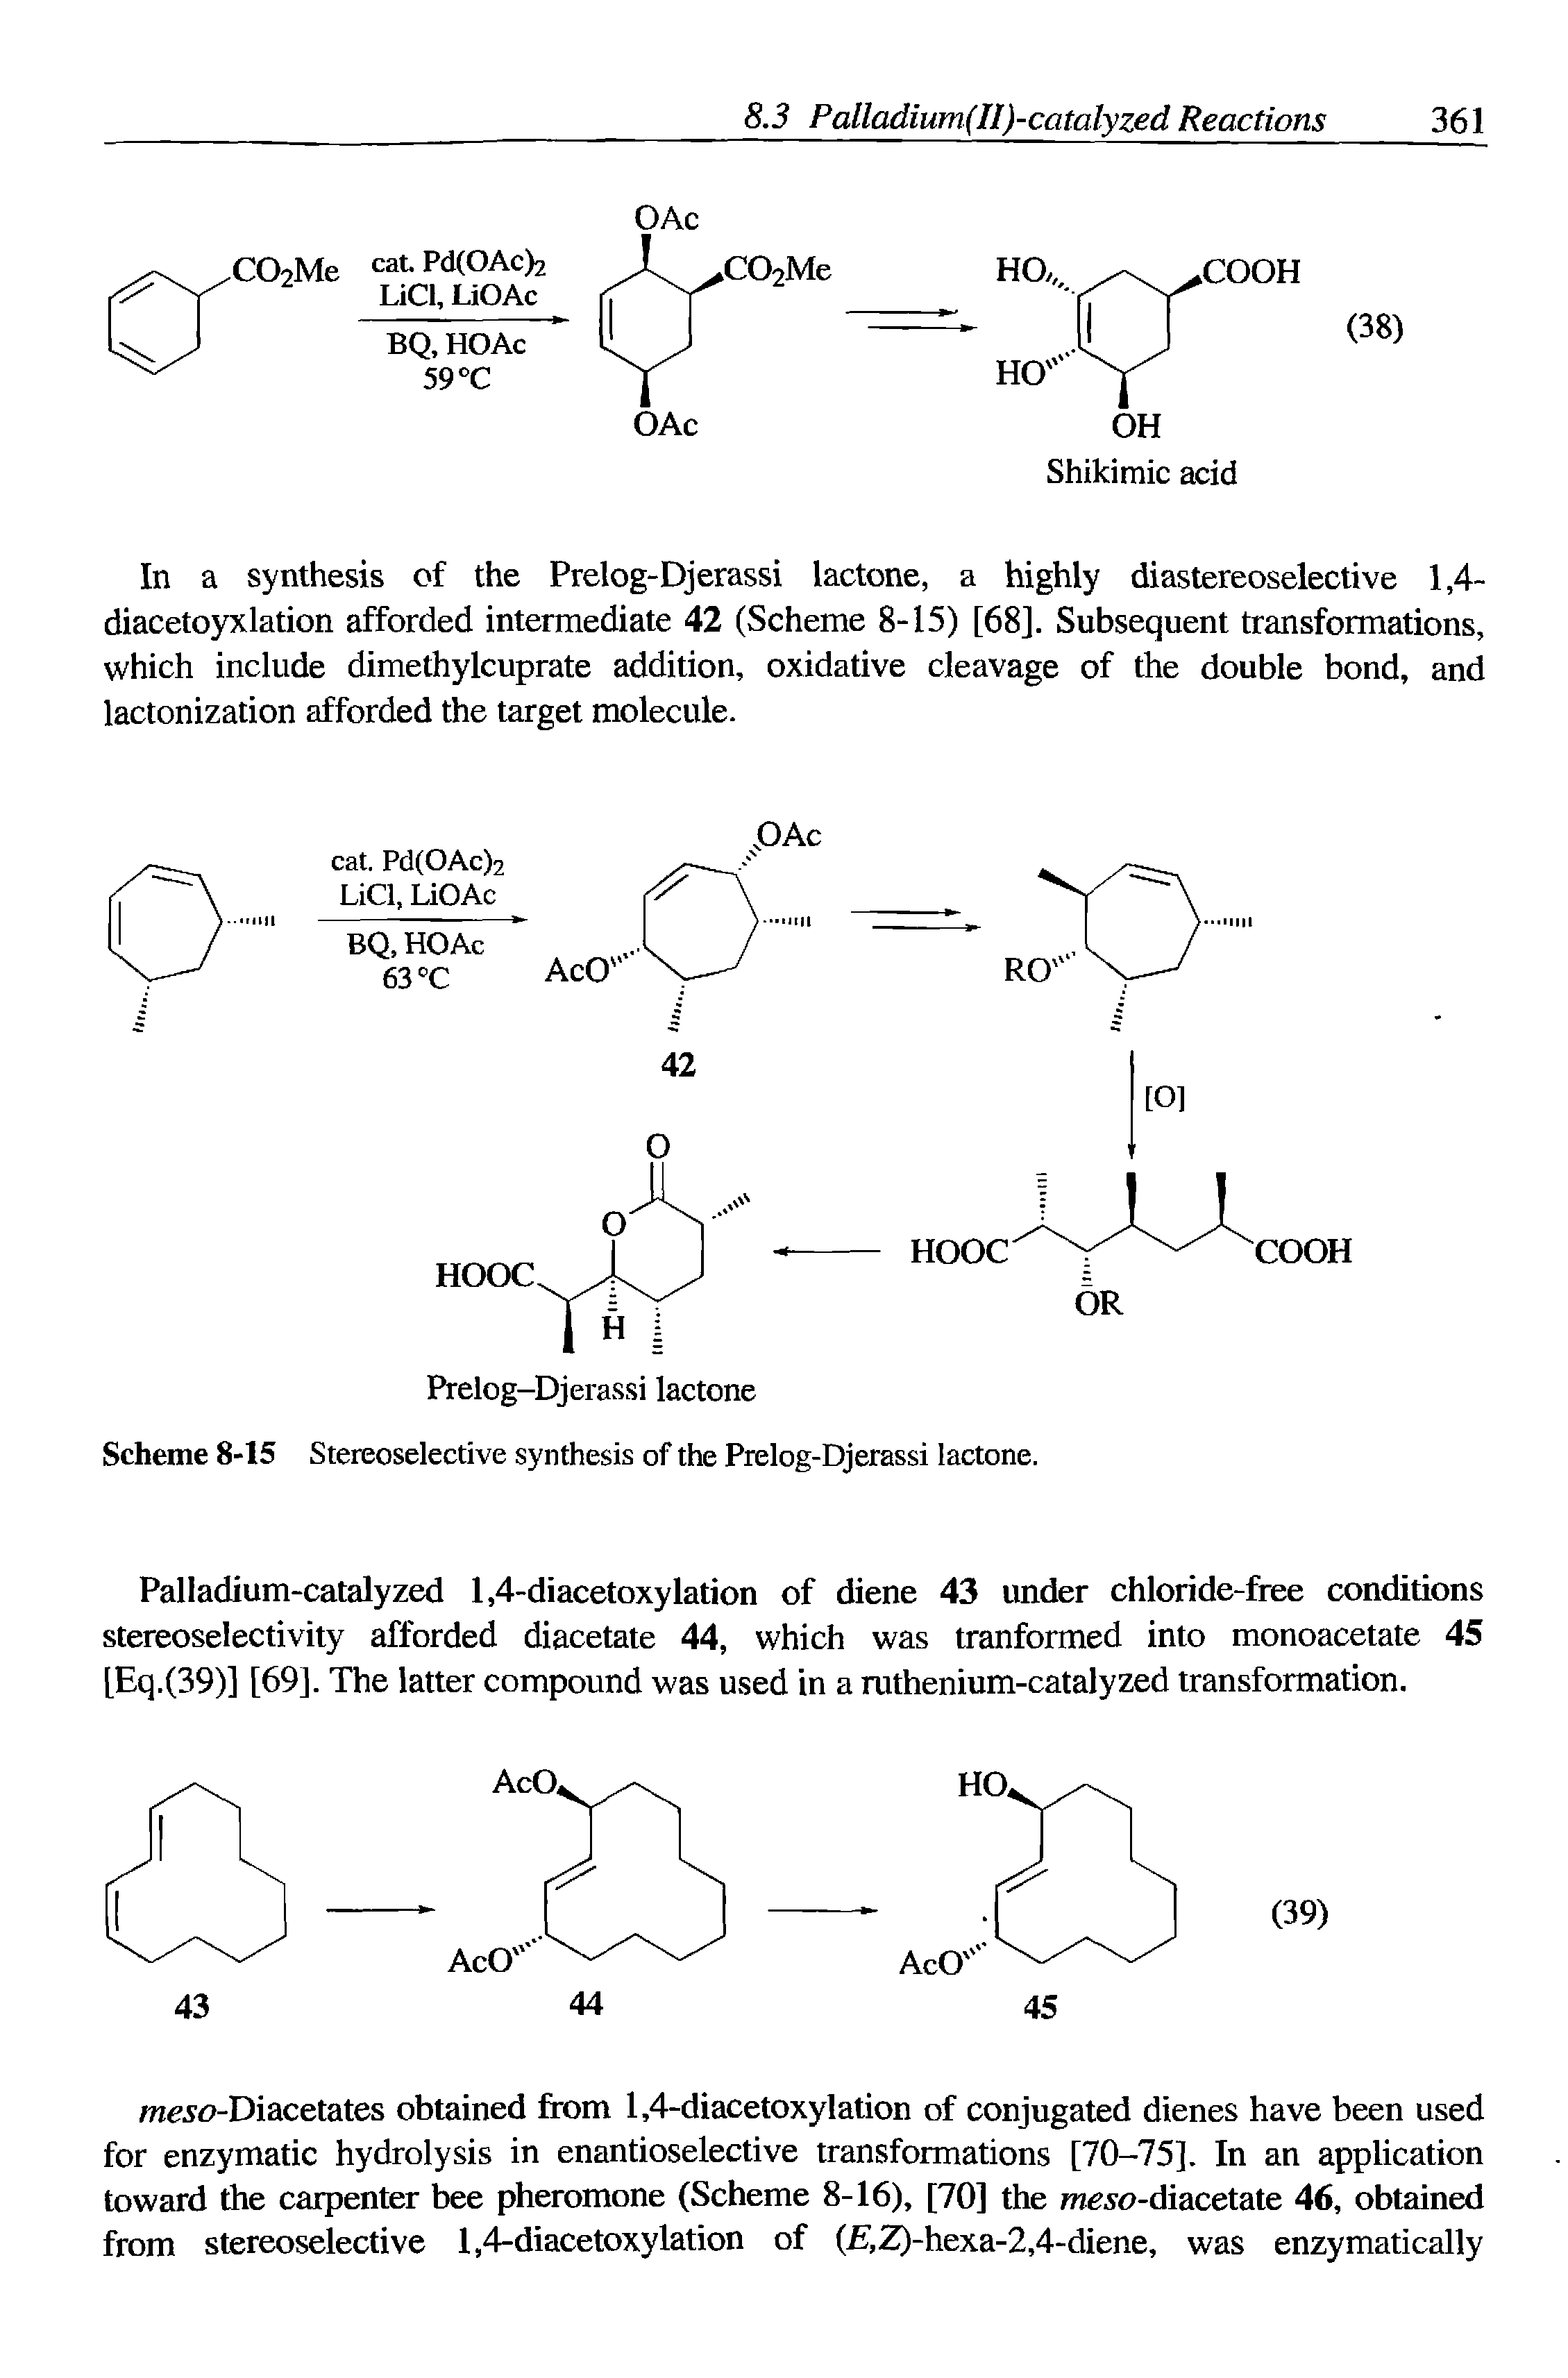 "Scheme 8-15 <a href=""/info/stereoselective_synthesis"">Stereoselective synthesis</a> of the Prelog-Djerassi lactone."